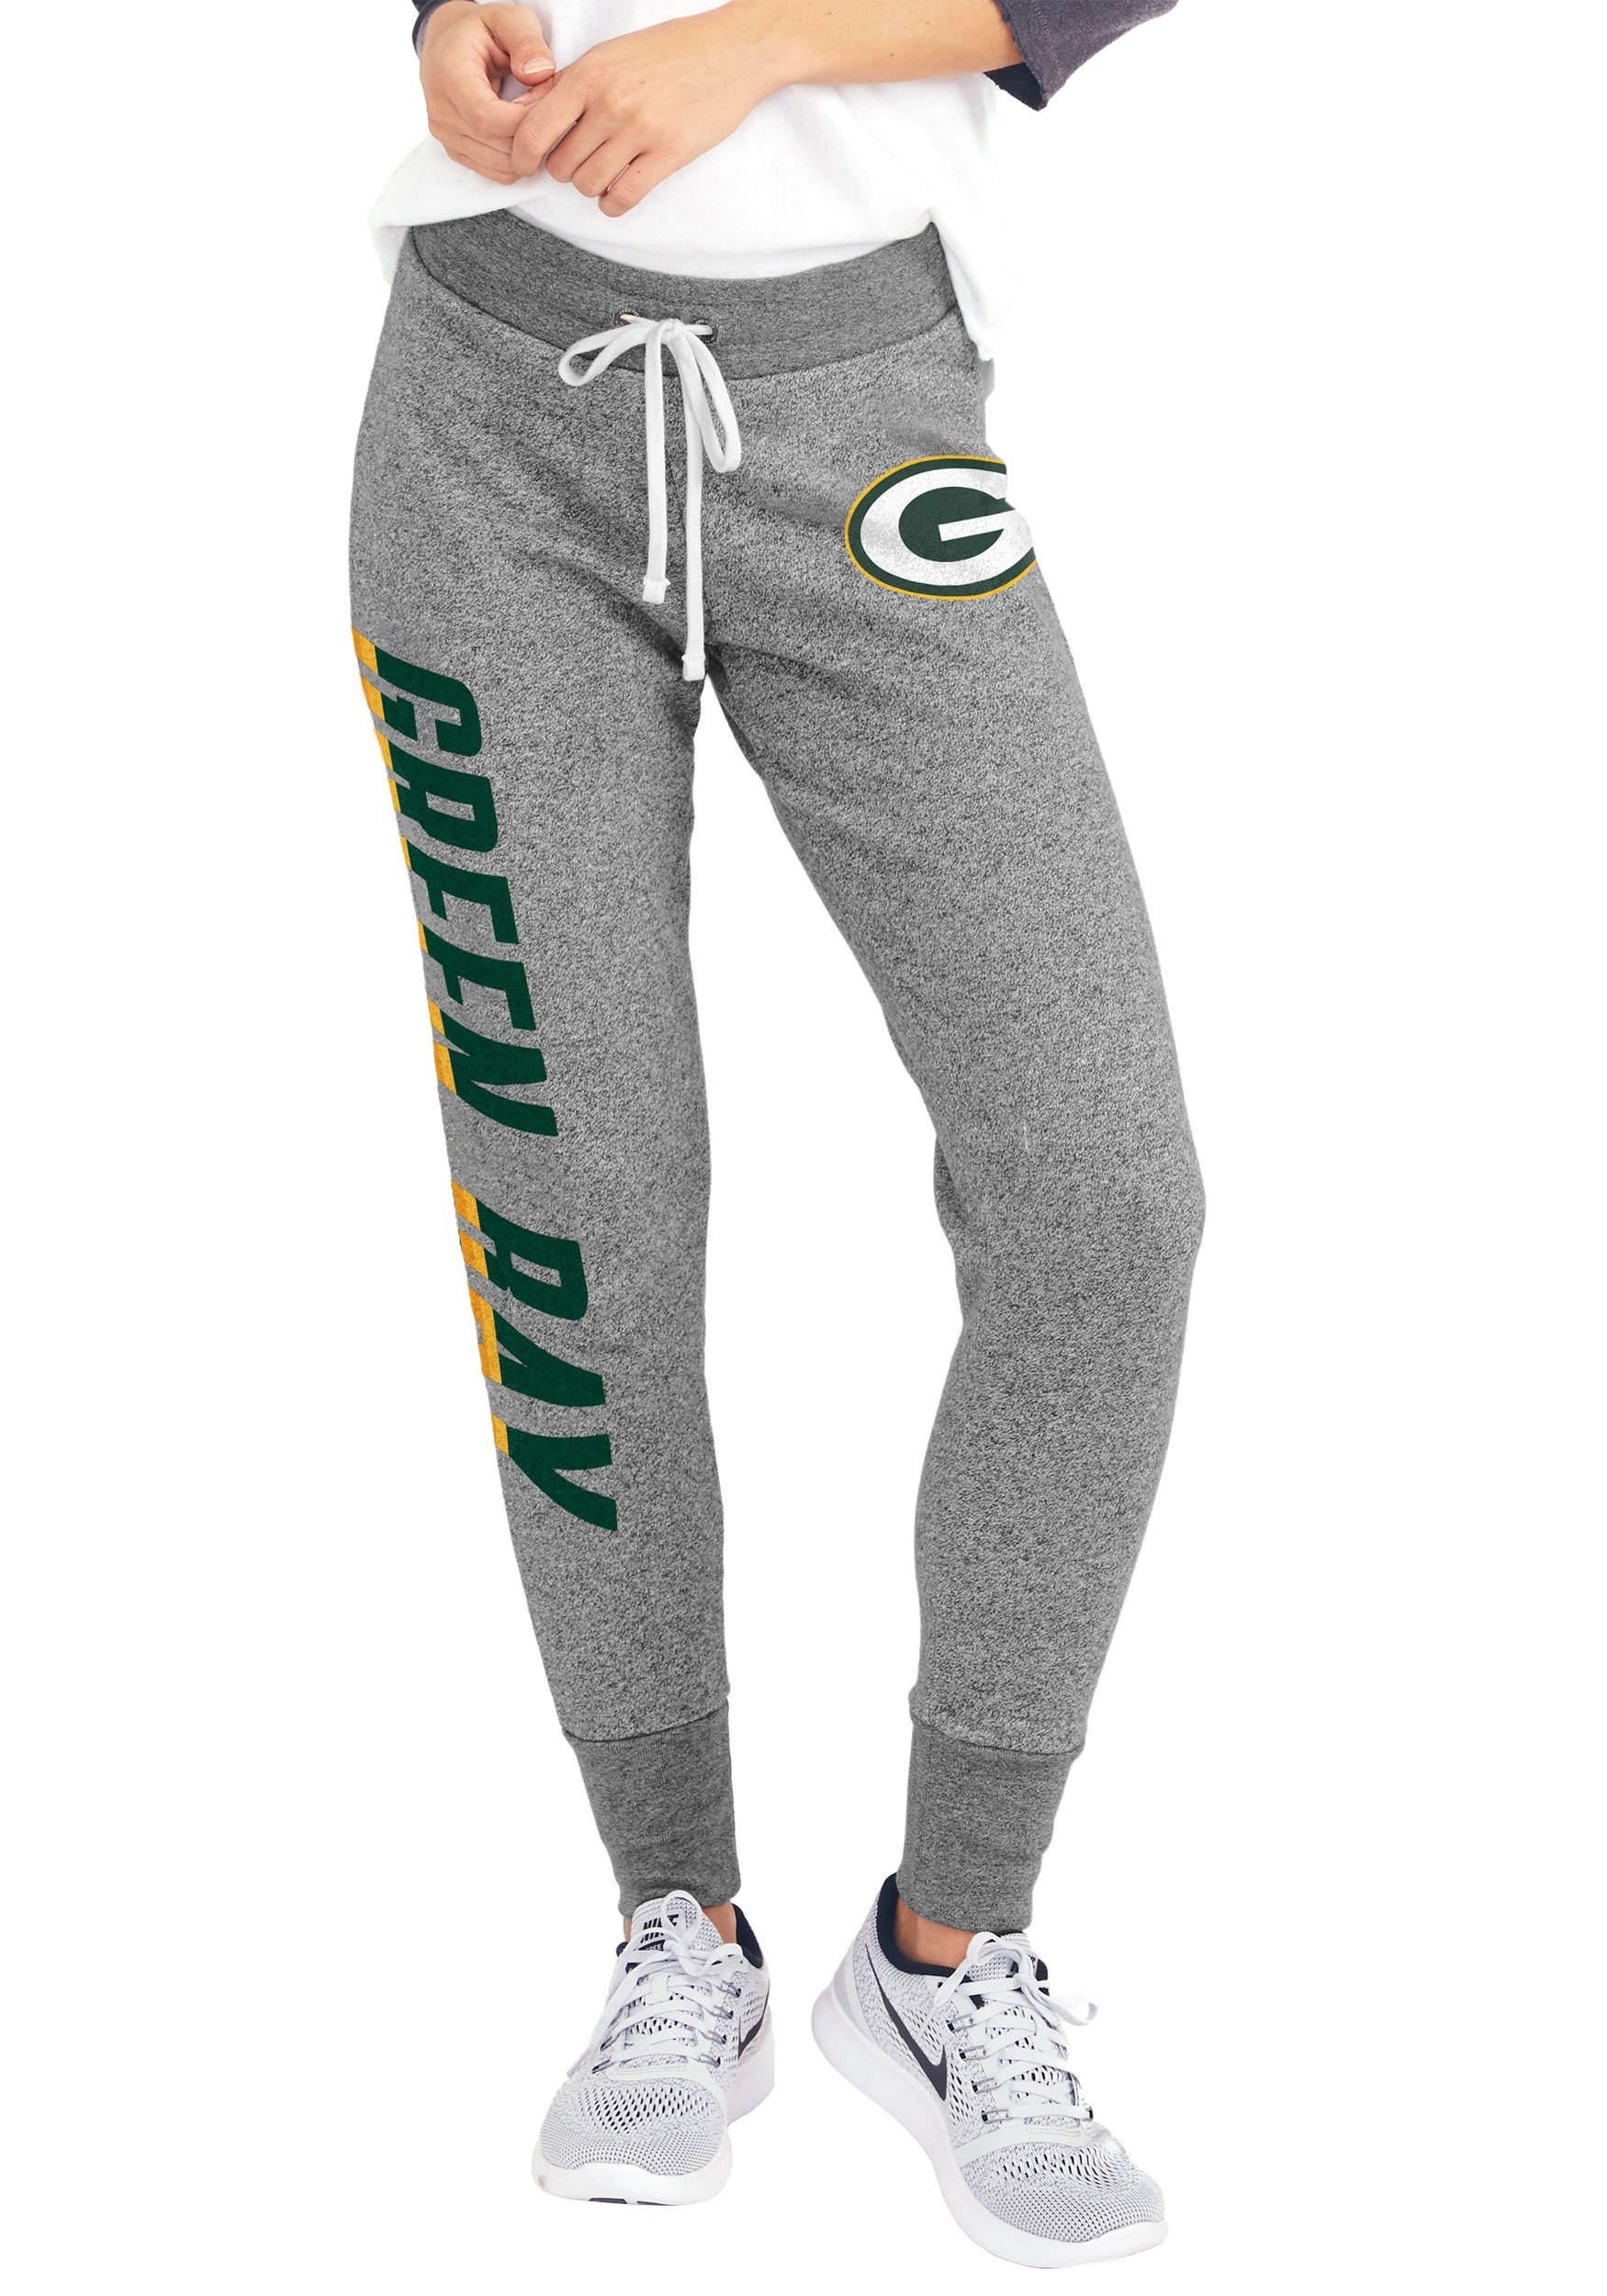 Green Bay Packers Sunday Sweatpants for Women